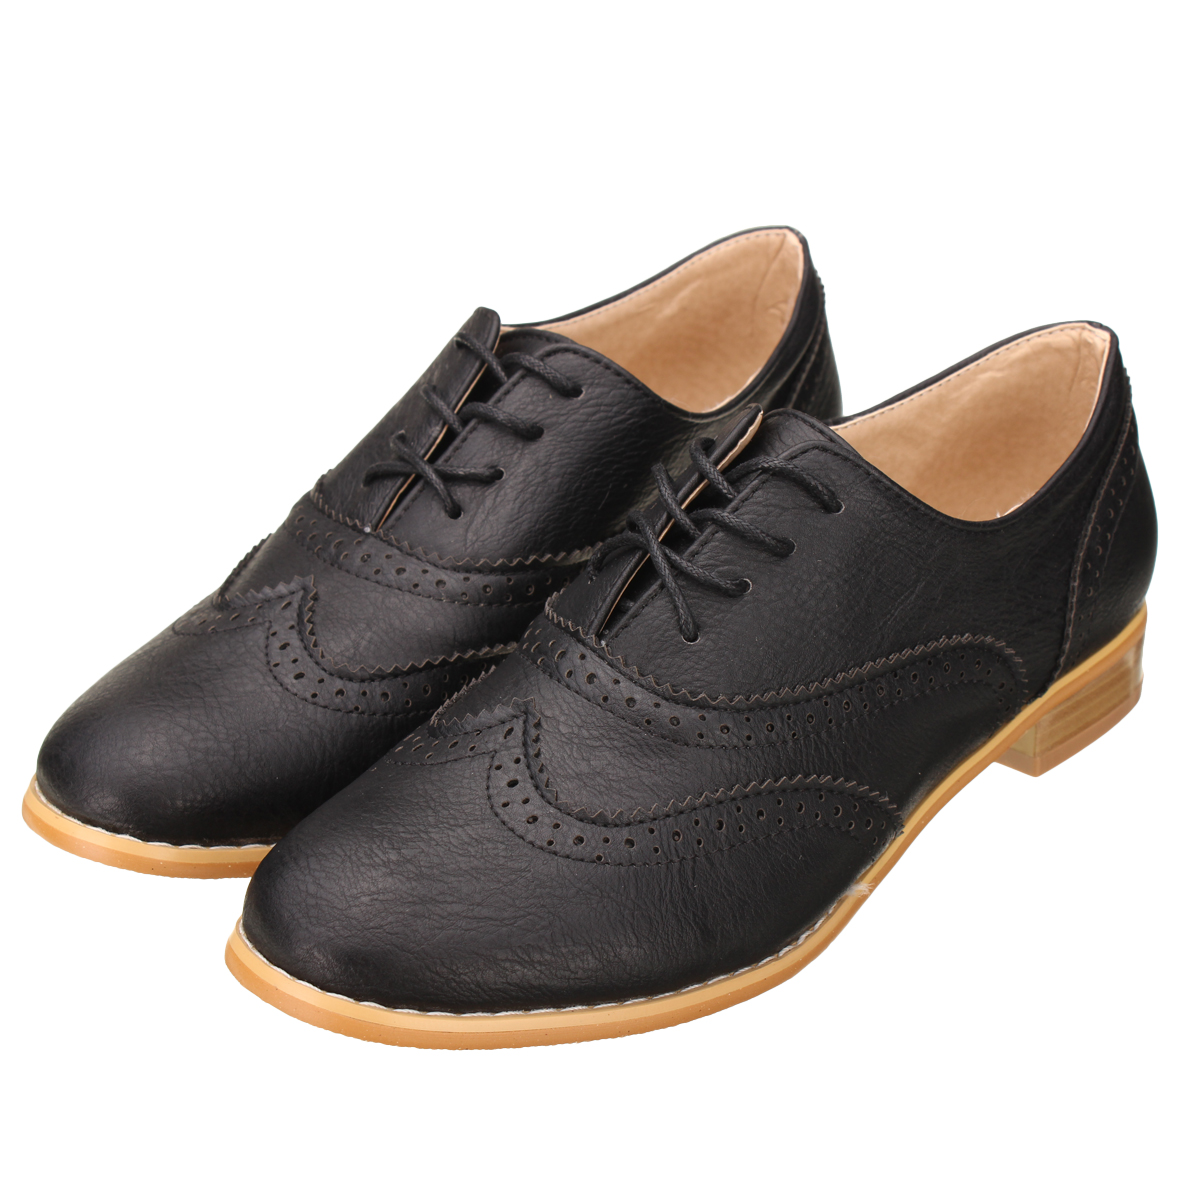 Retro Women Lace Up Wing Tip Oxford College Style Flat Fashion Shoes Ebay